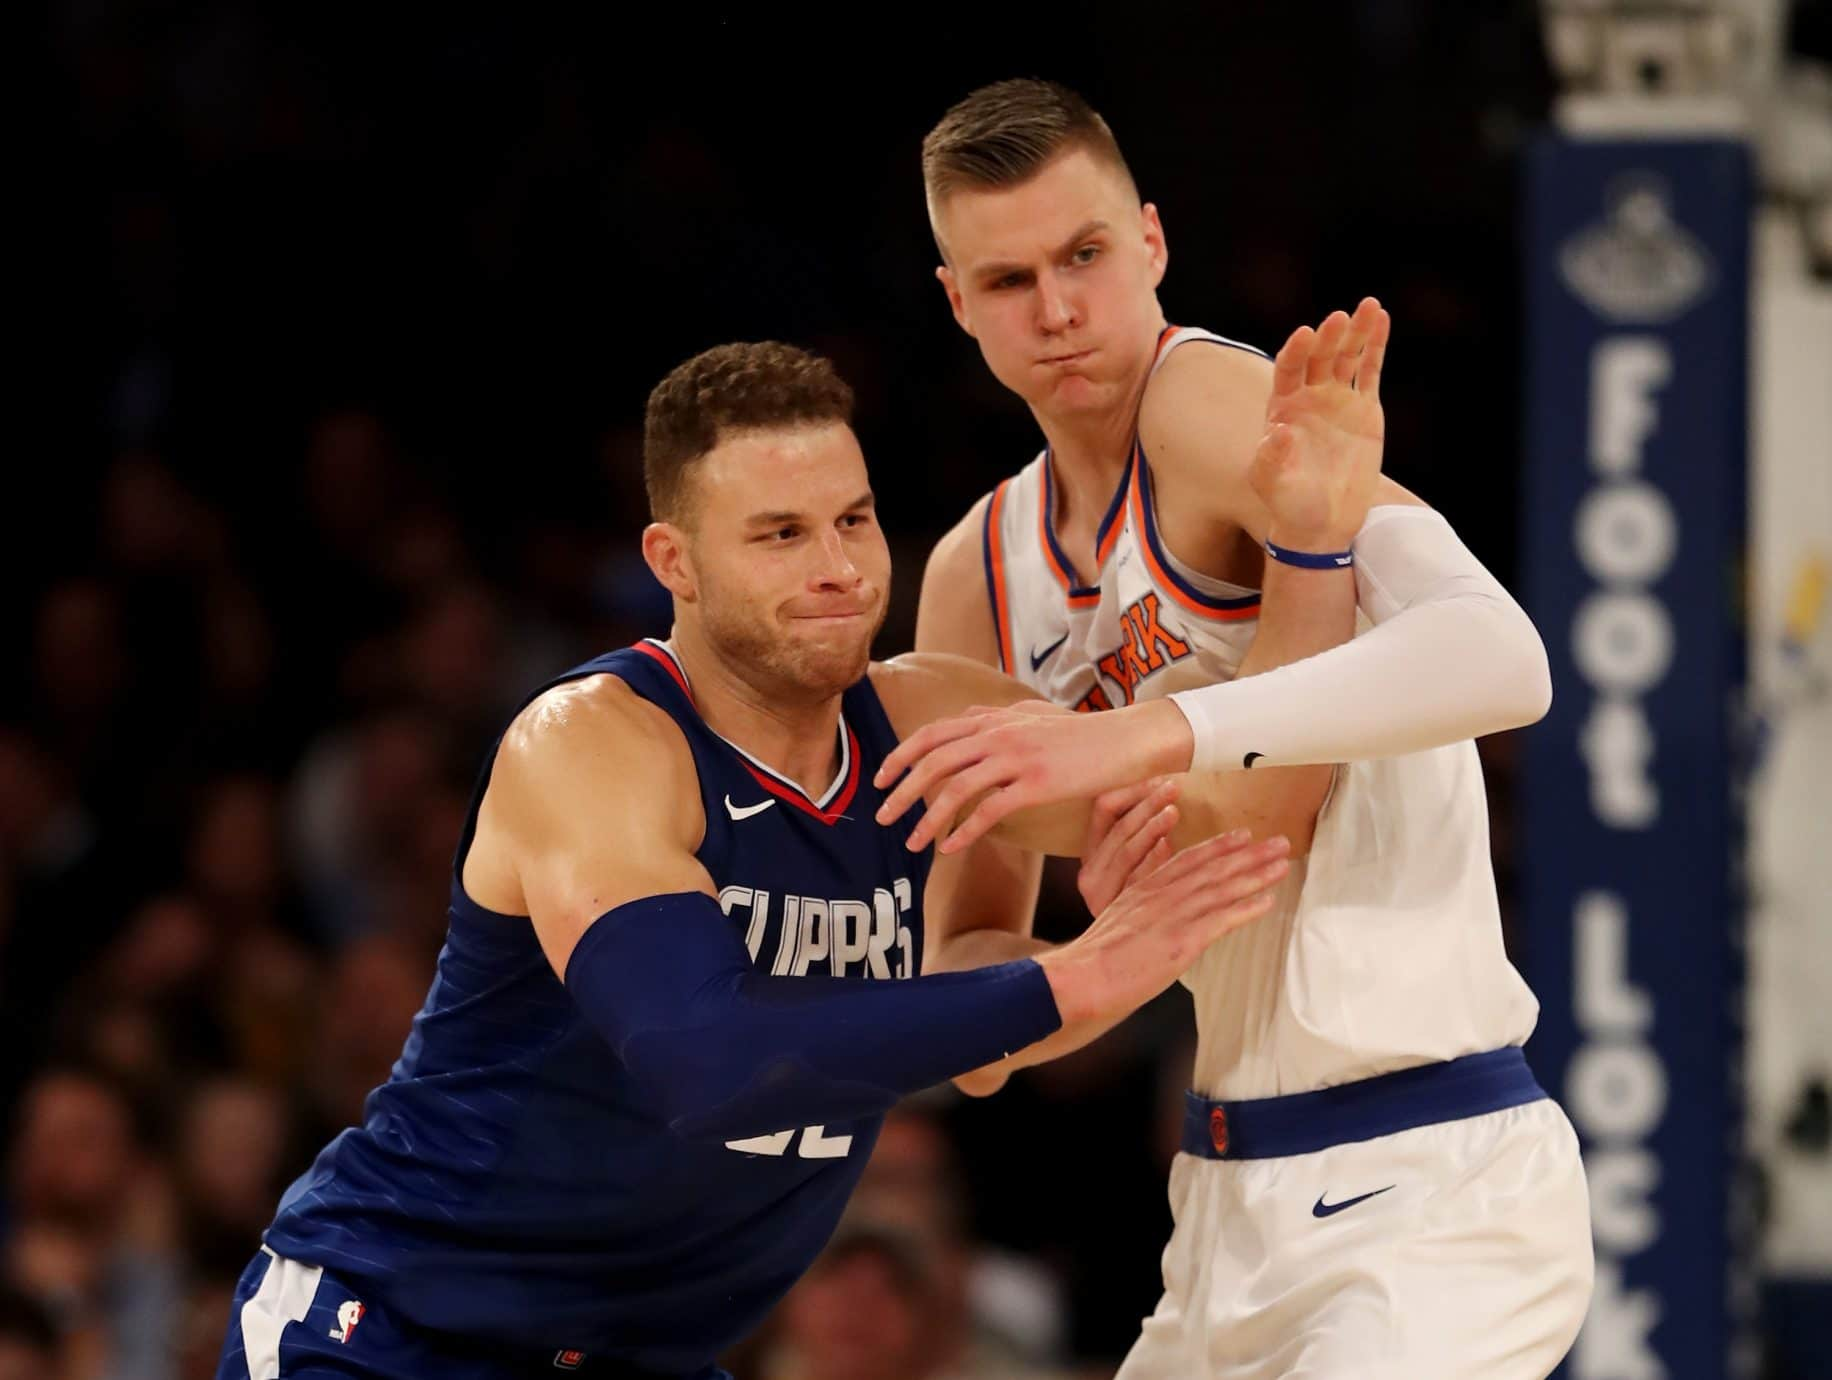 New York Knicks dodged a bullet in avoiding a Blake Griffin